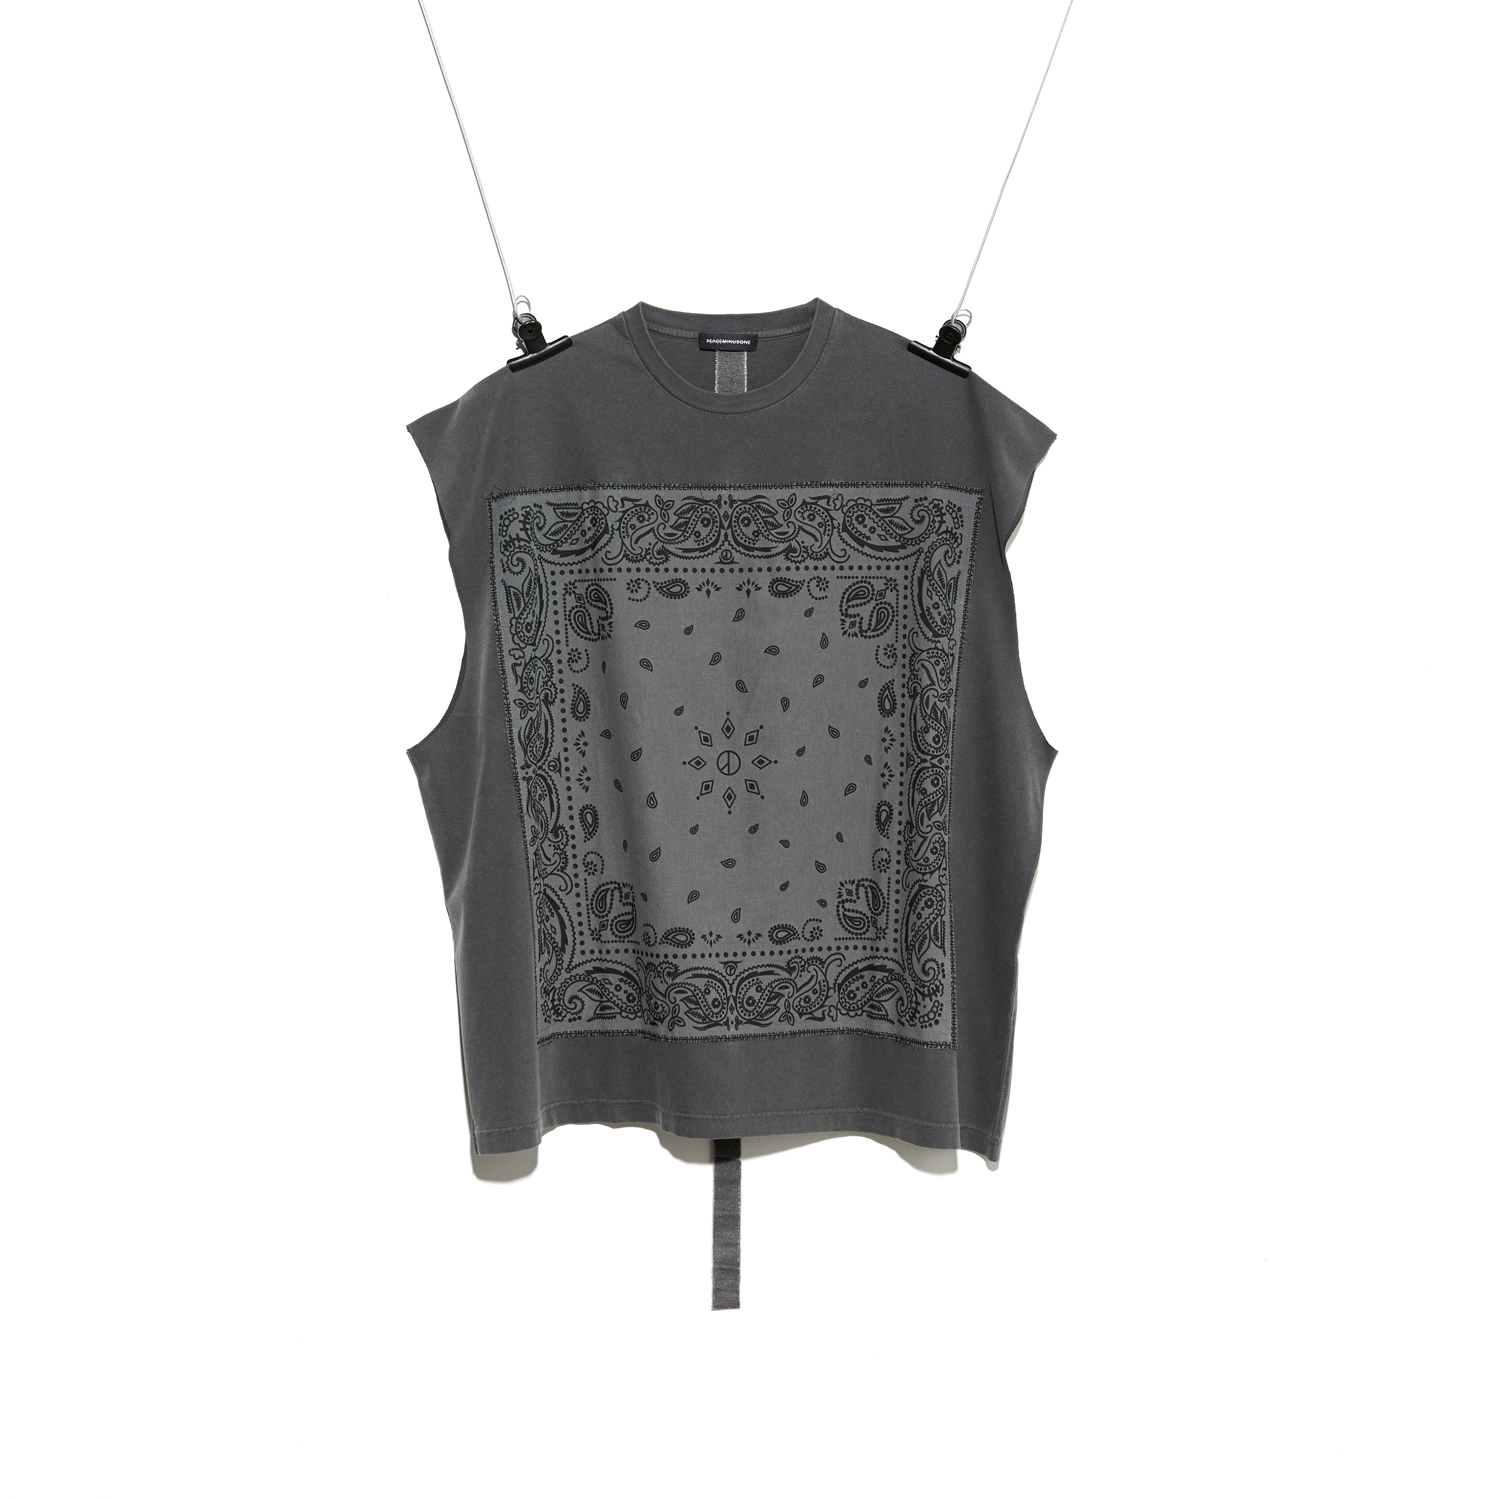 PMO BANDANA SLEEVELESS #1 CHARCOAL